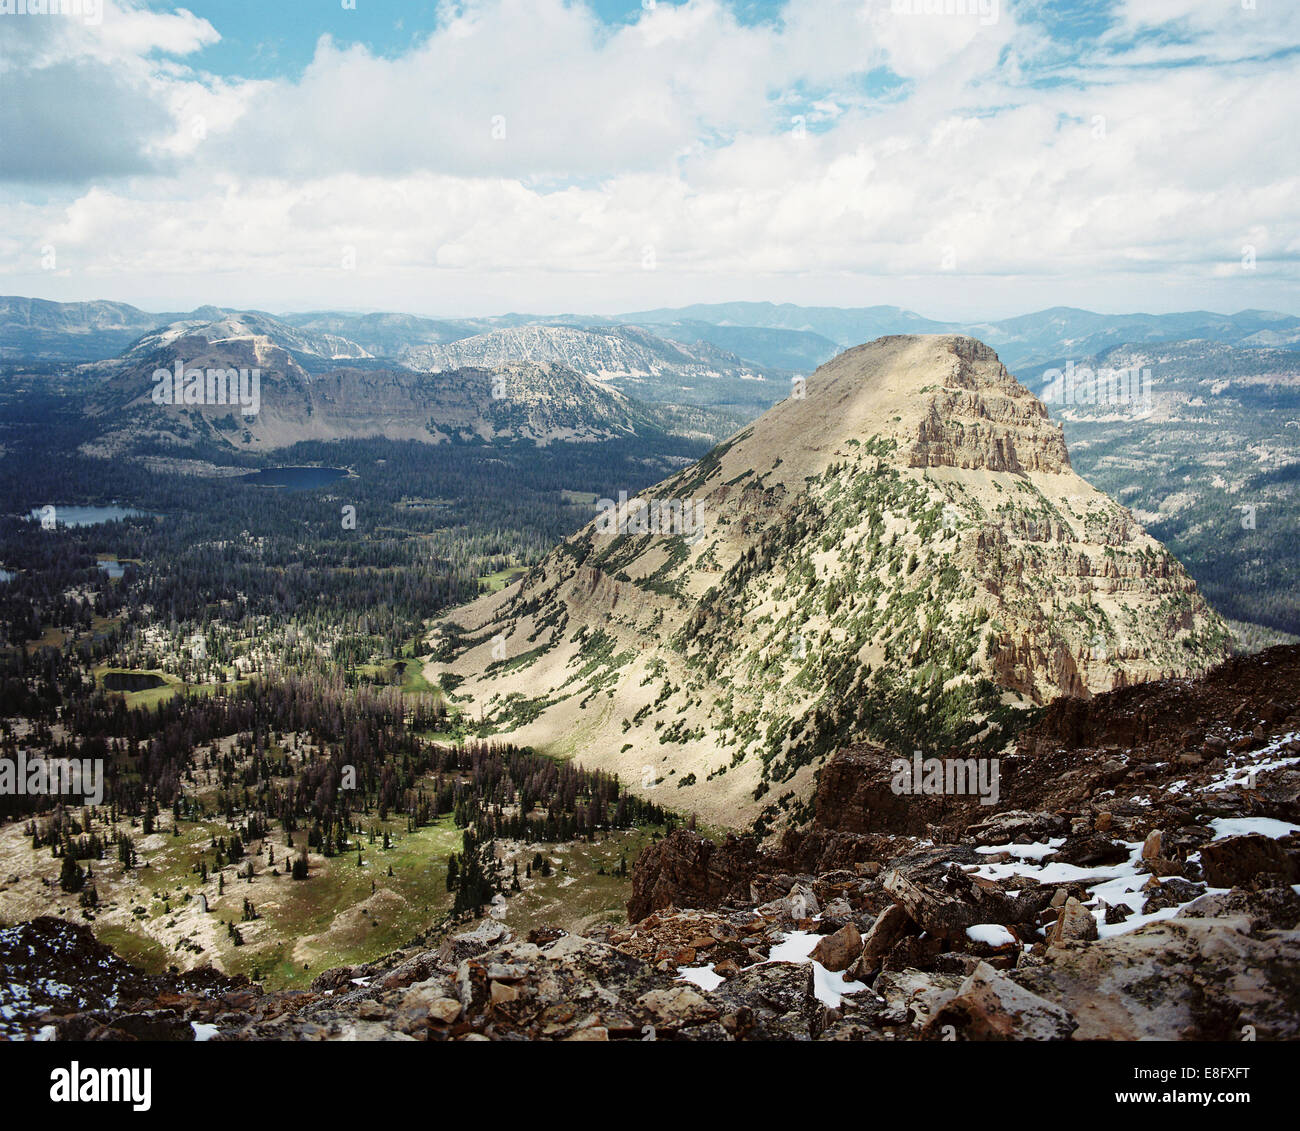 USA, Utah, Aerial view of mountains and valleys from Bald Mountain - Stock Image